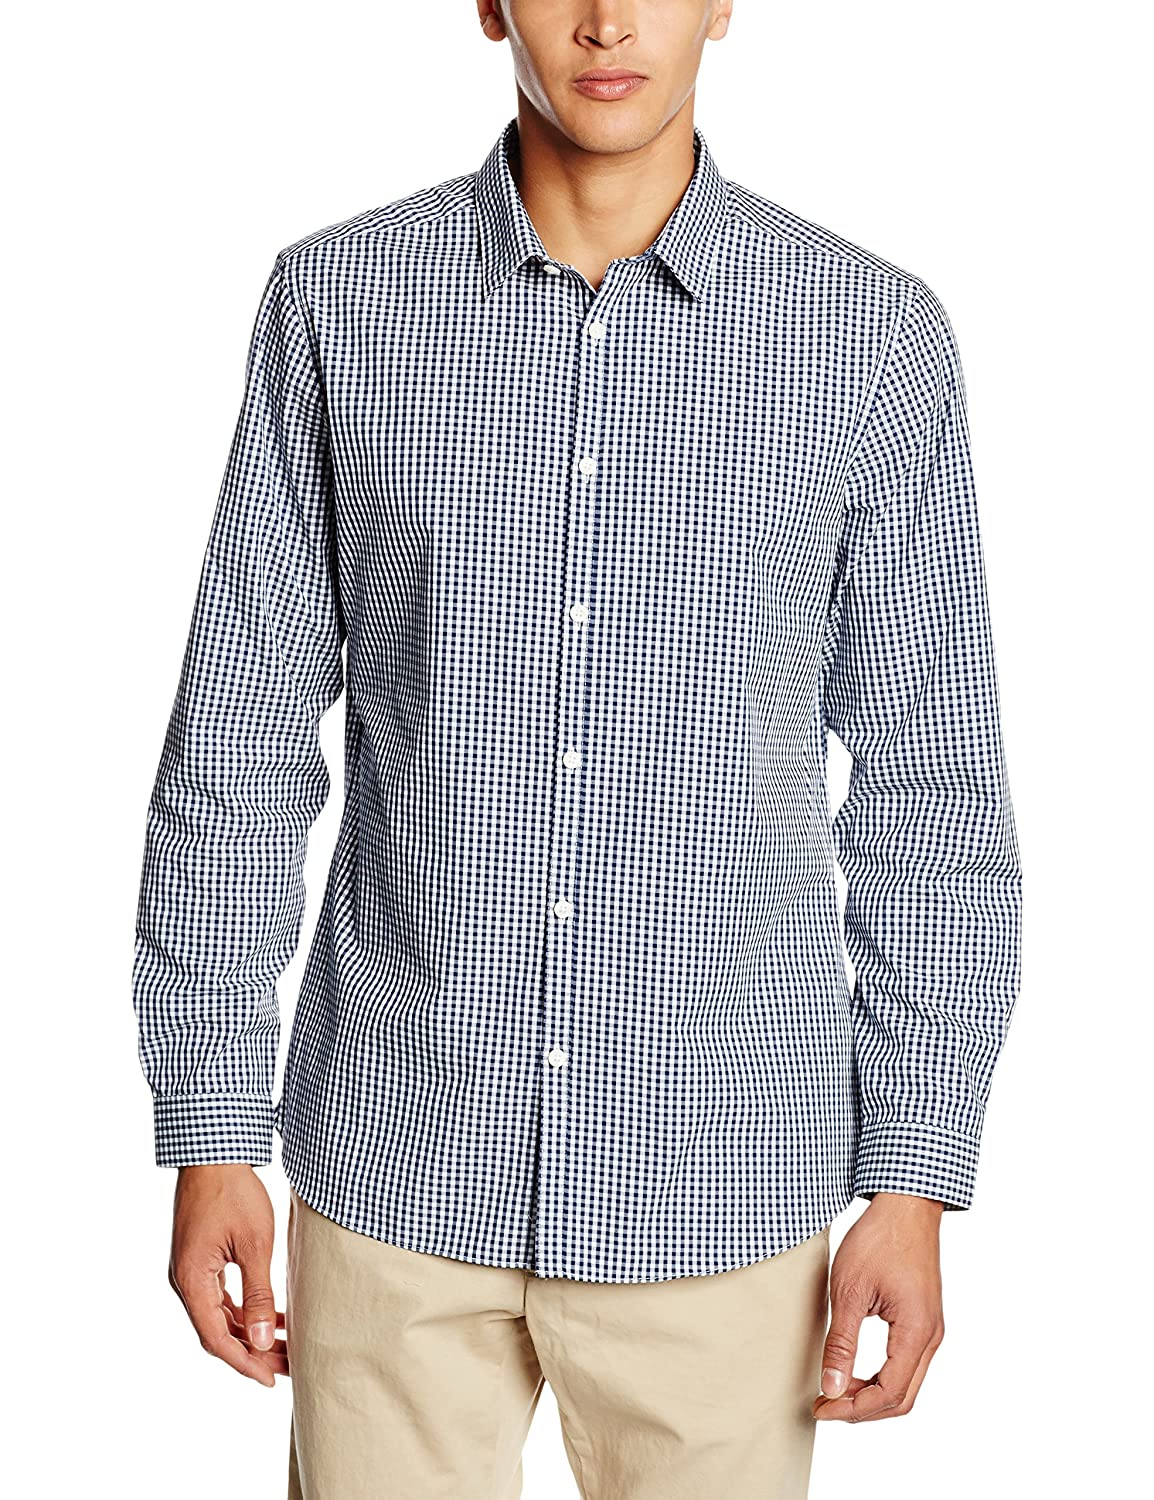 TALLA M. New Look Smart Gingham, Camisa para Hombre